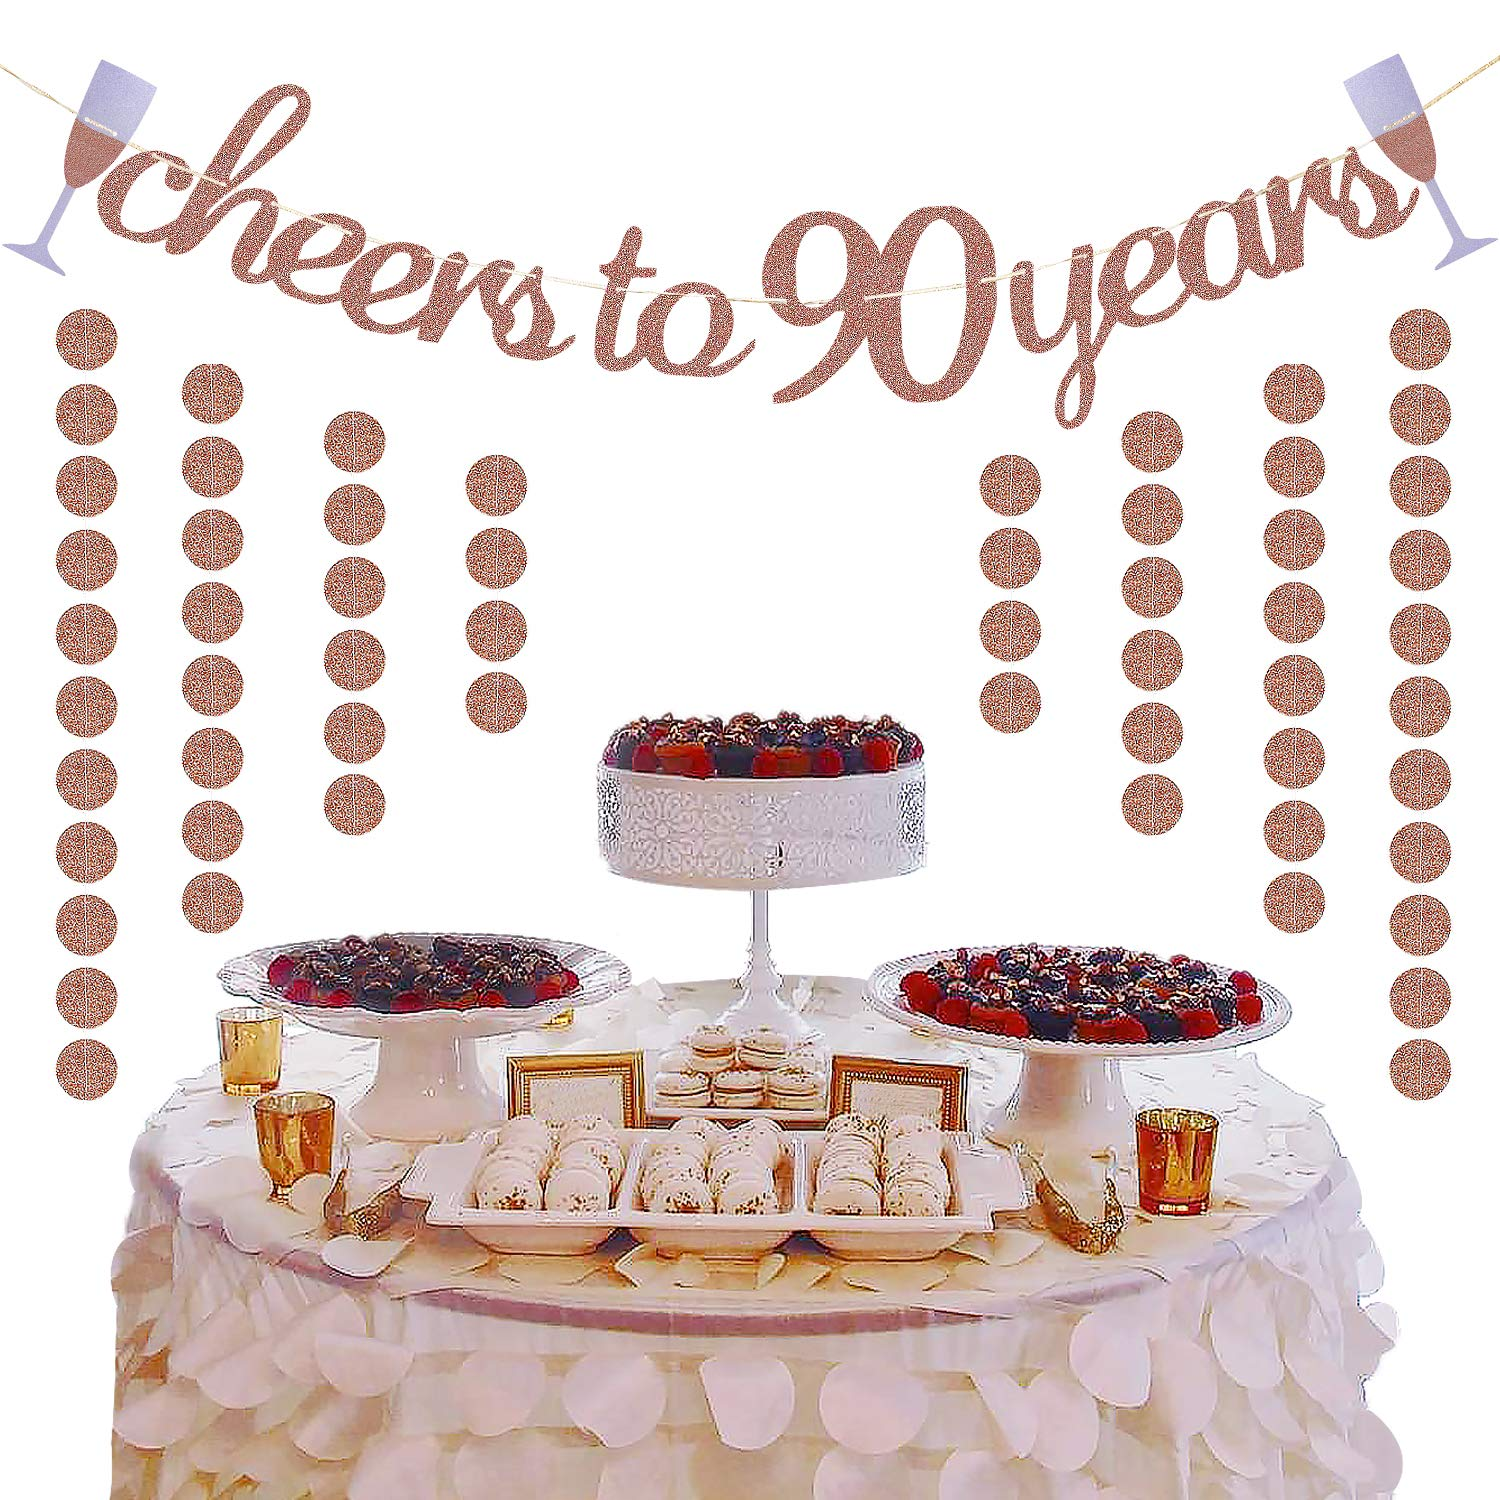 Extra Rose Gold Glittery Circle Dots Garland Partyprops ABCD Glittery Rose Gold Cheers to 90 Years Banner for 90th Birthday Wedding Anniversary Party Decorations Supplies